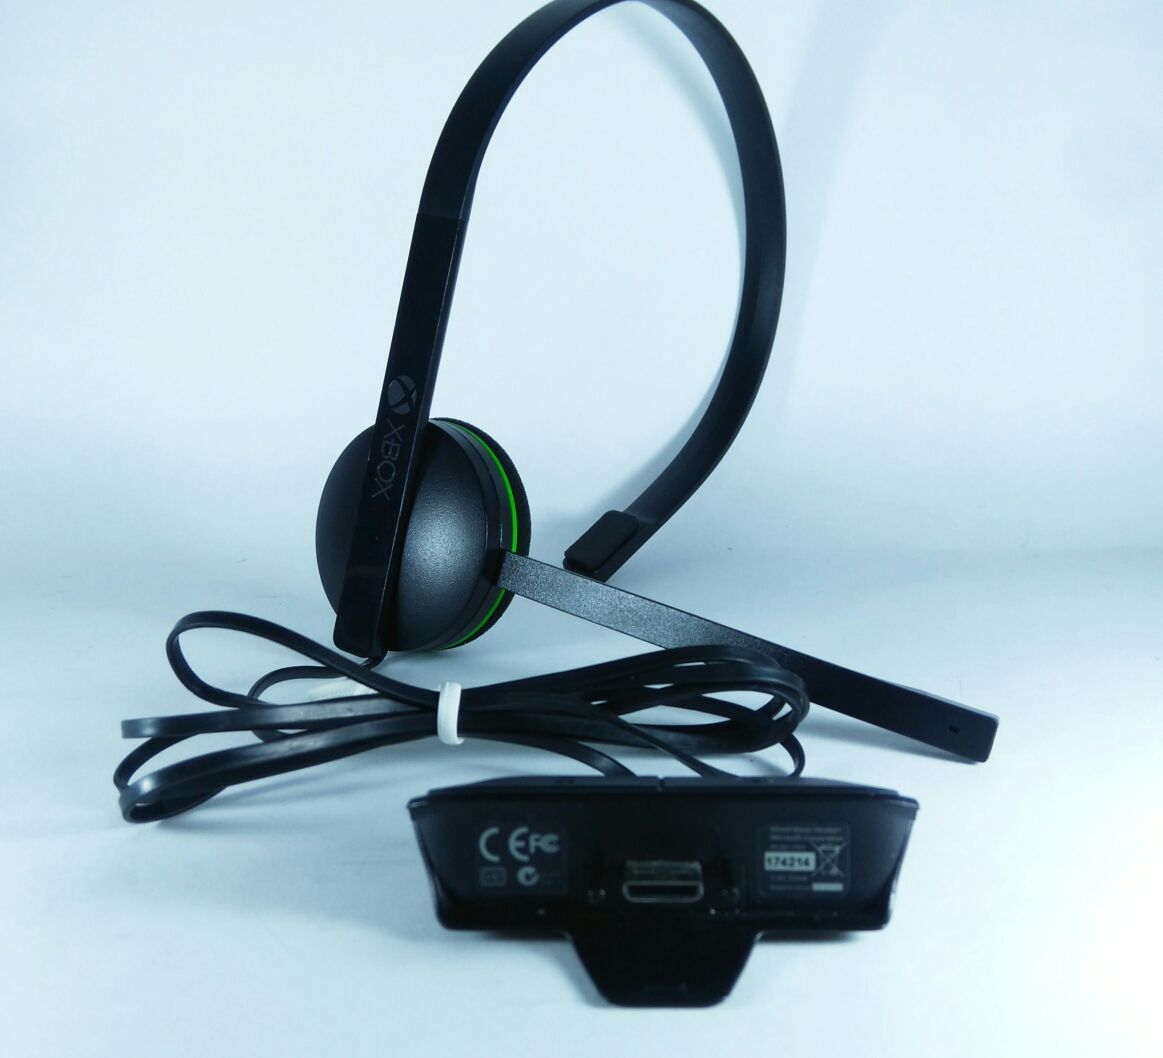 Fone Headset XBOX ONE Preto original usado pronta entrega - Place Games